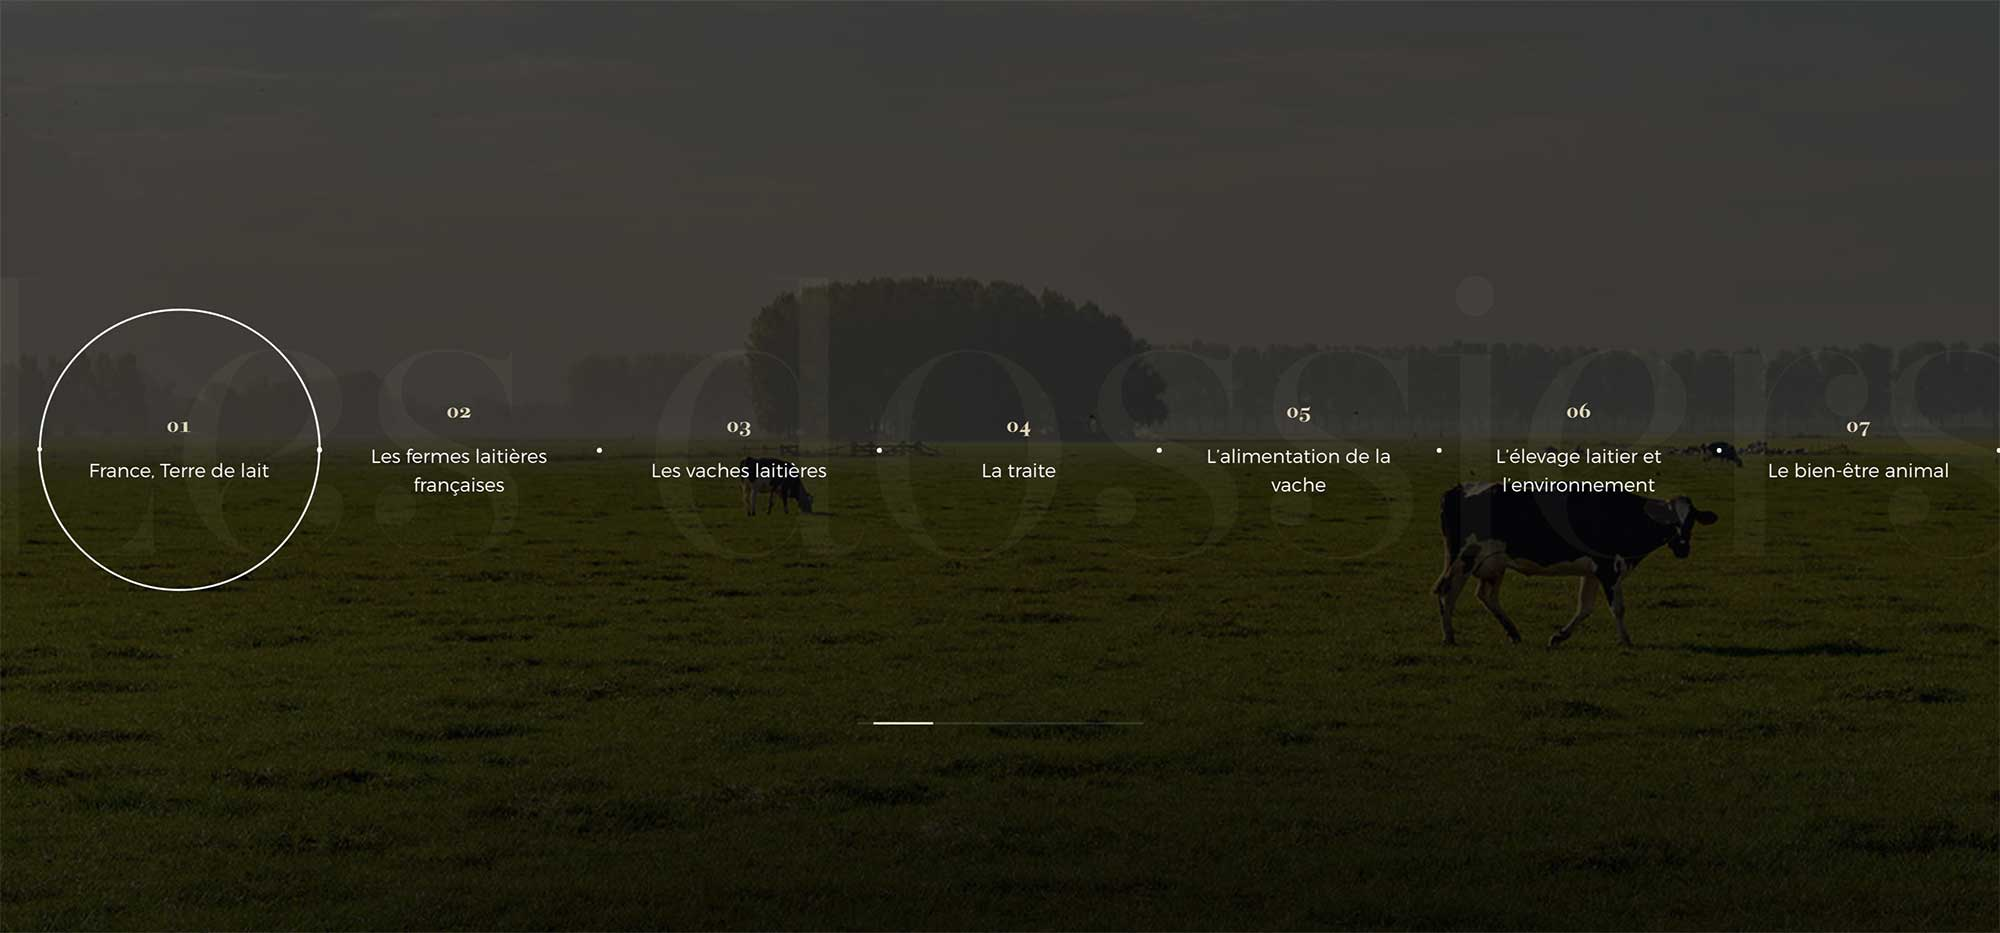 Background image of the post header